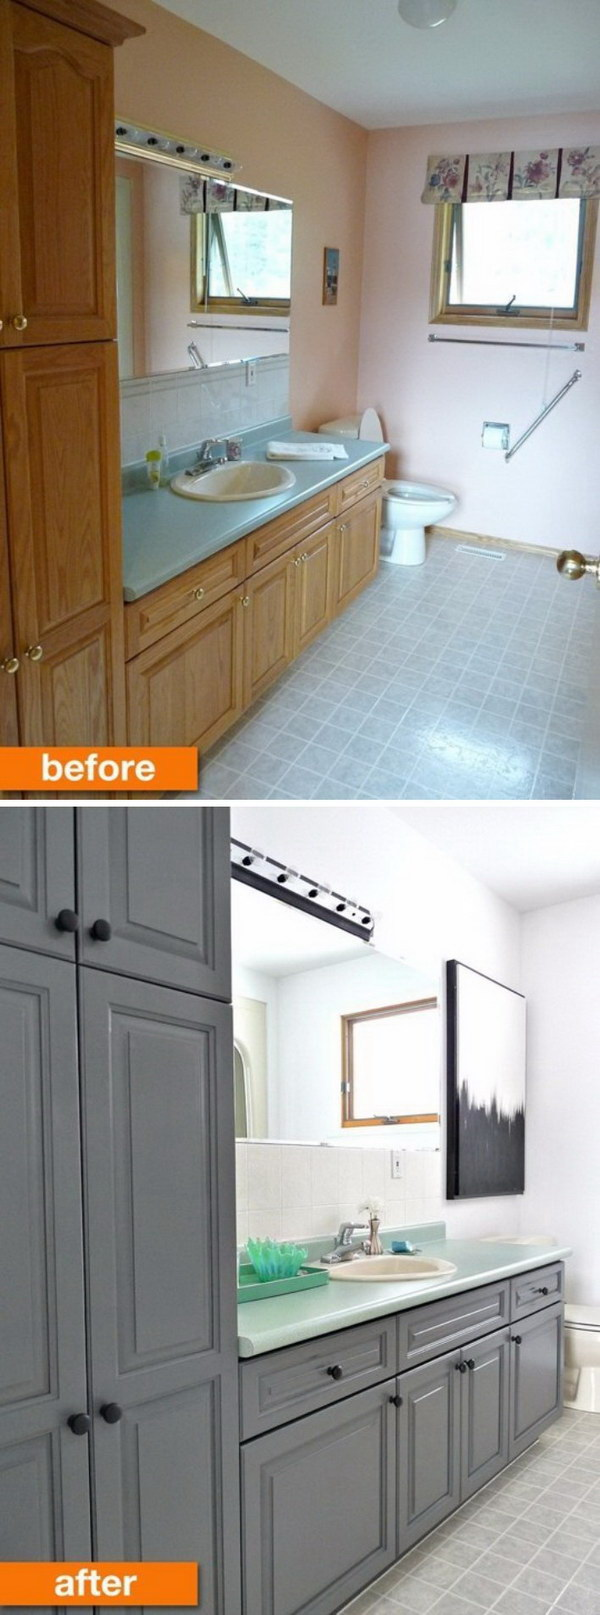 cheap bathroom remodeling ideas before and after makeovers 20 most beautiful bathroom remodeling ideas noted list 3568